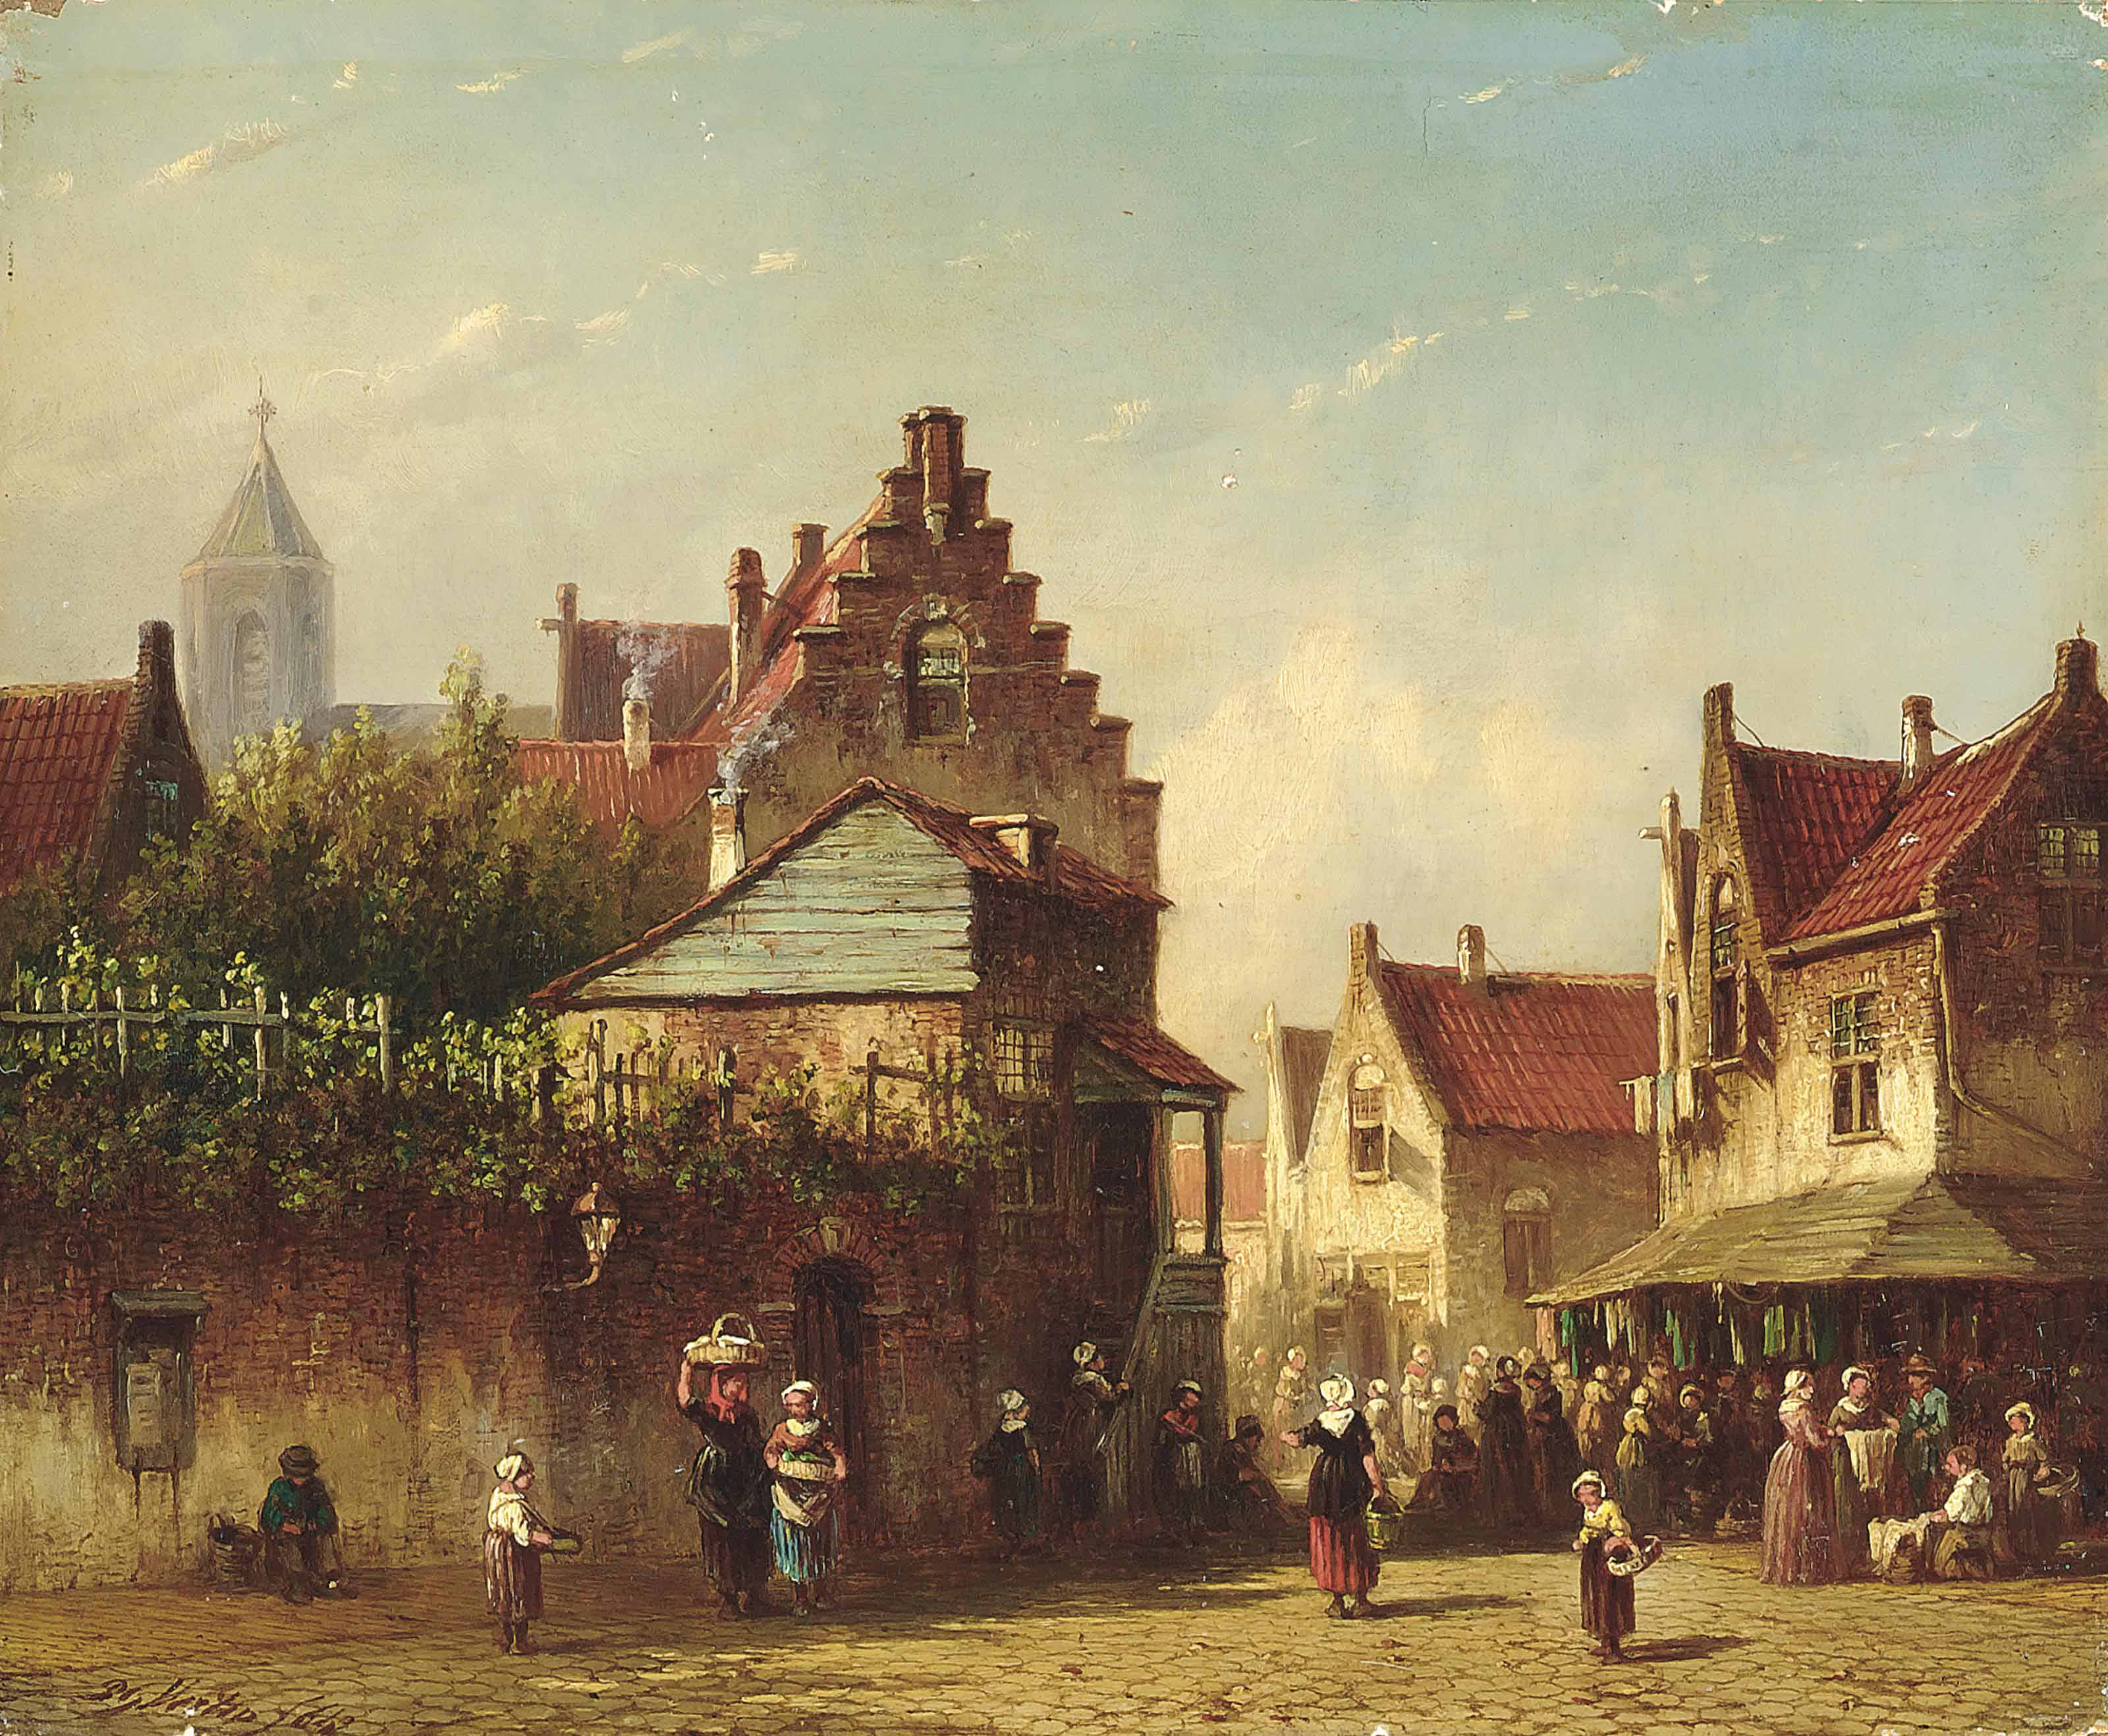 A bustling market on a Dutch street